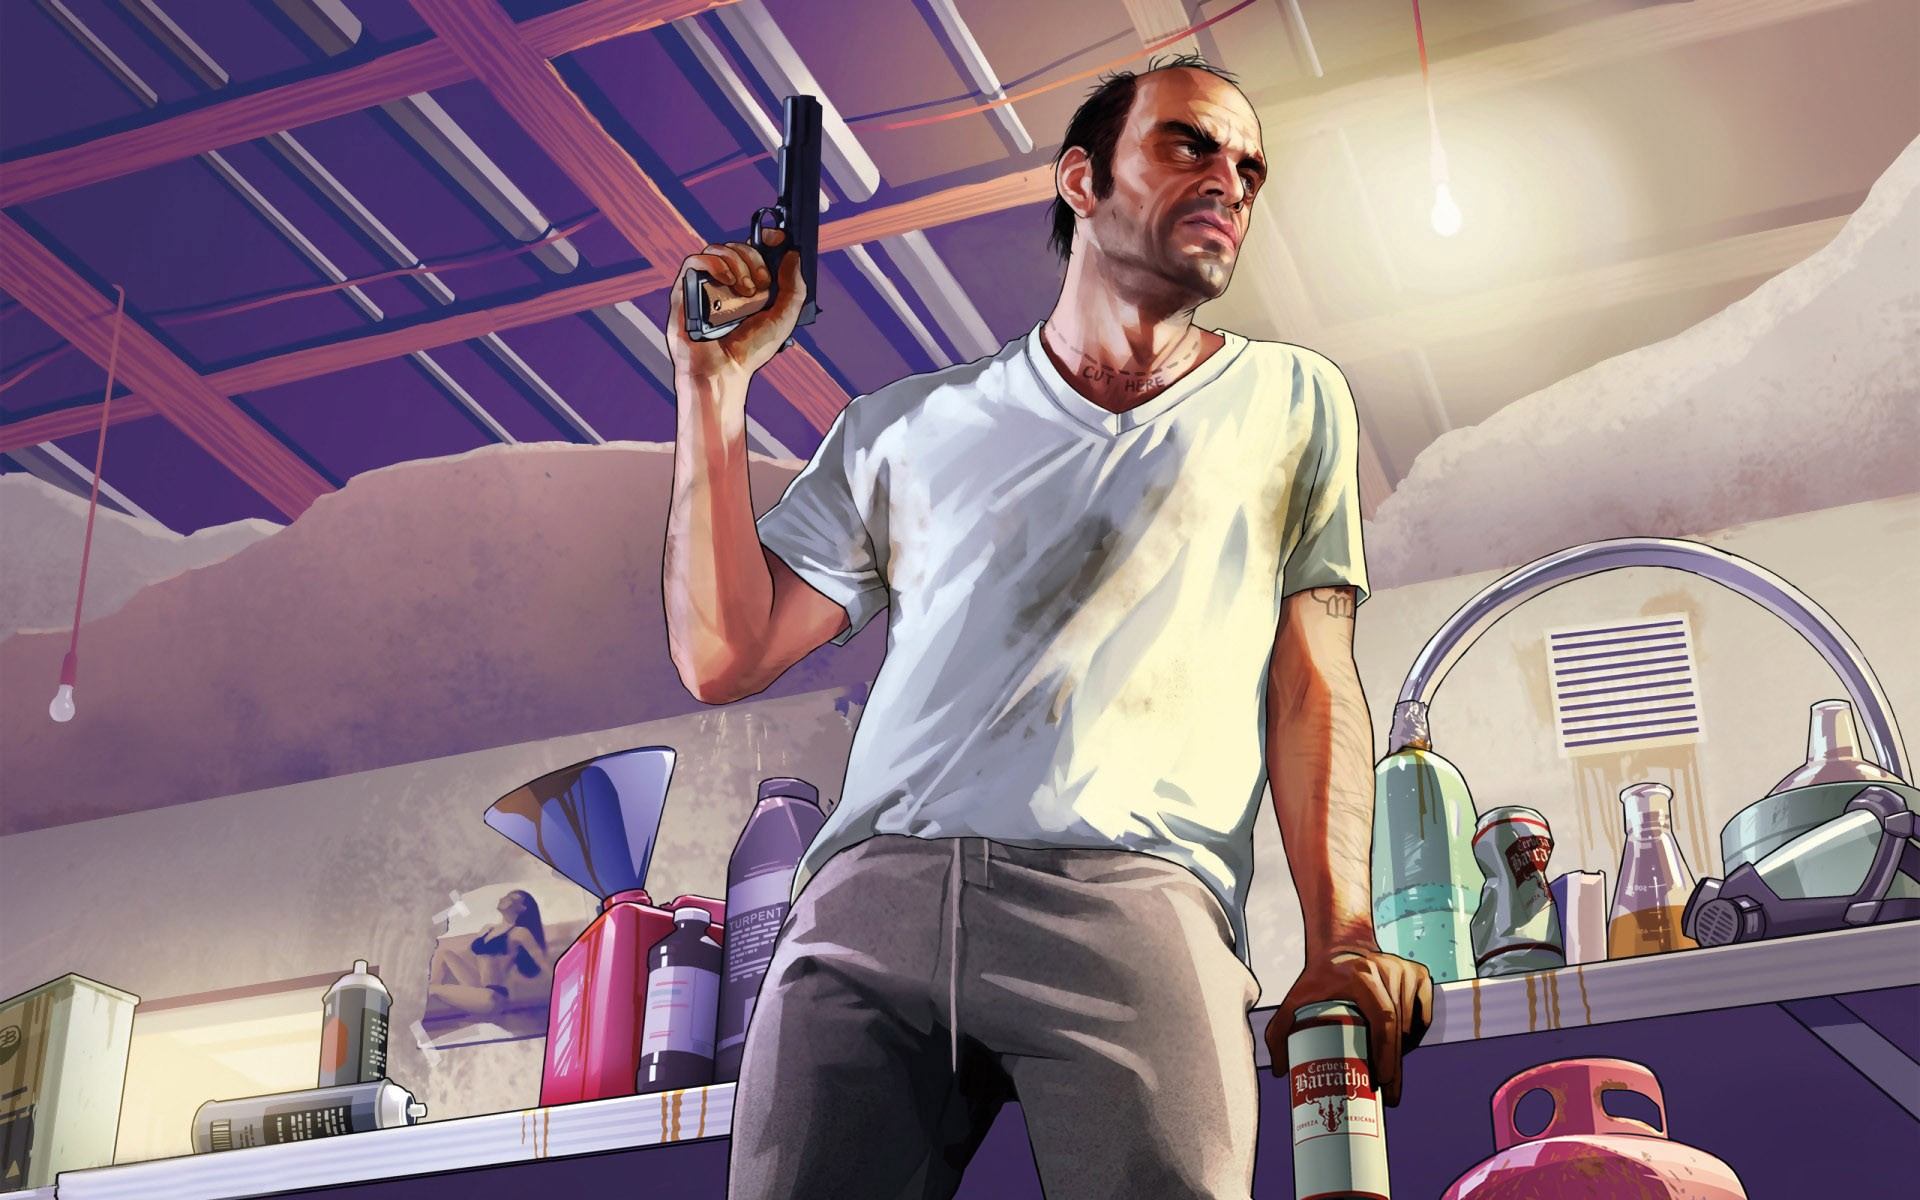 gta5-artwork-77-hd.jpg